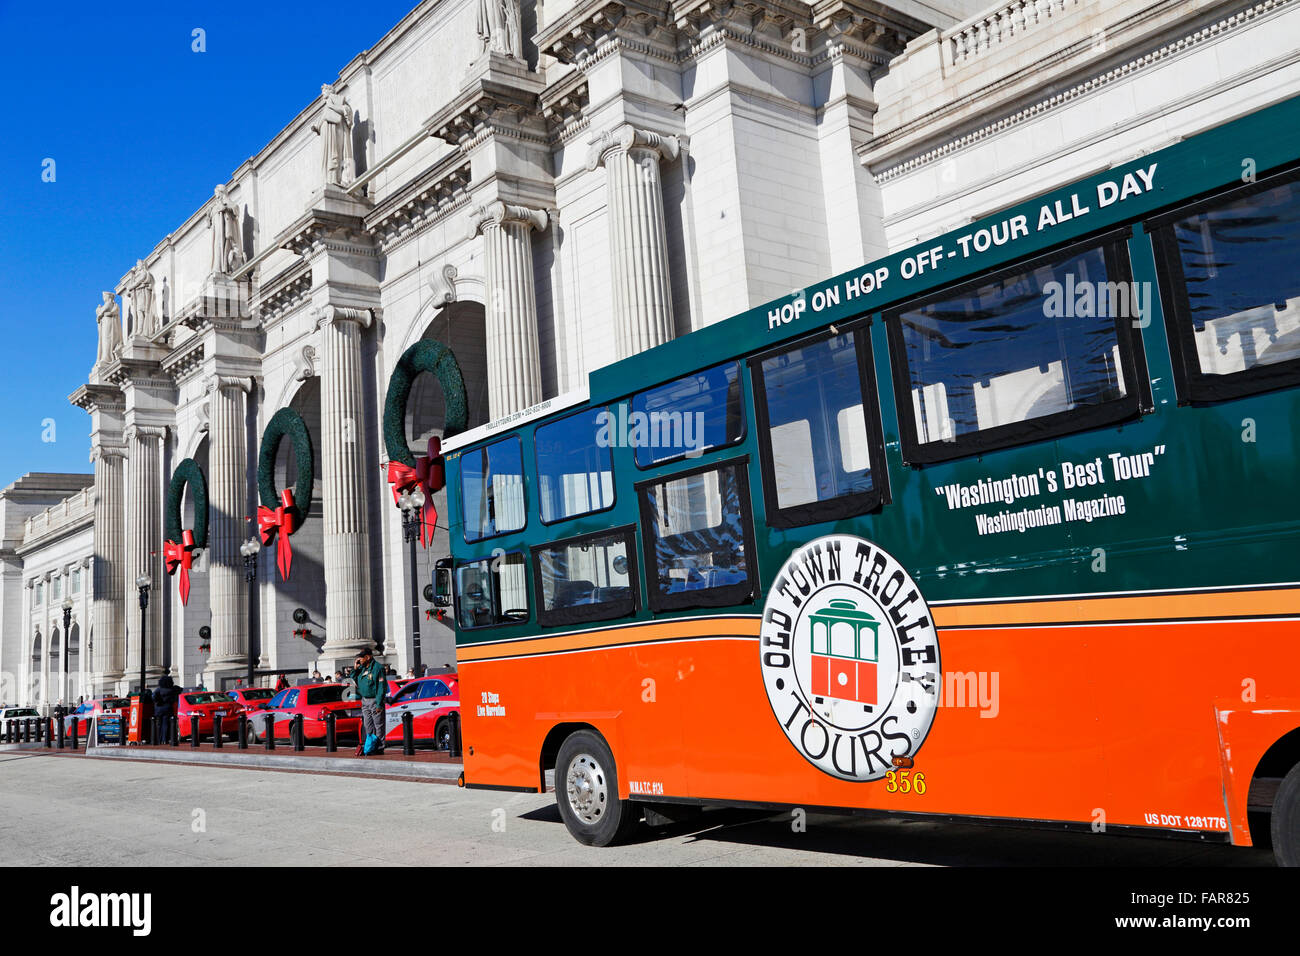 tour-bus-old-town-trolley-outside-union-